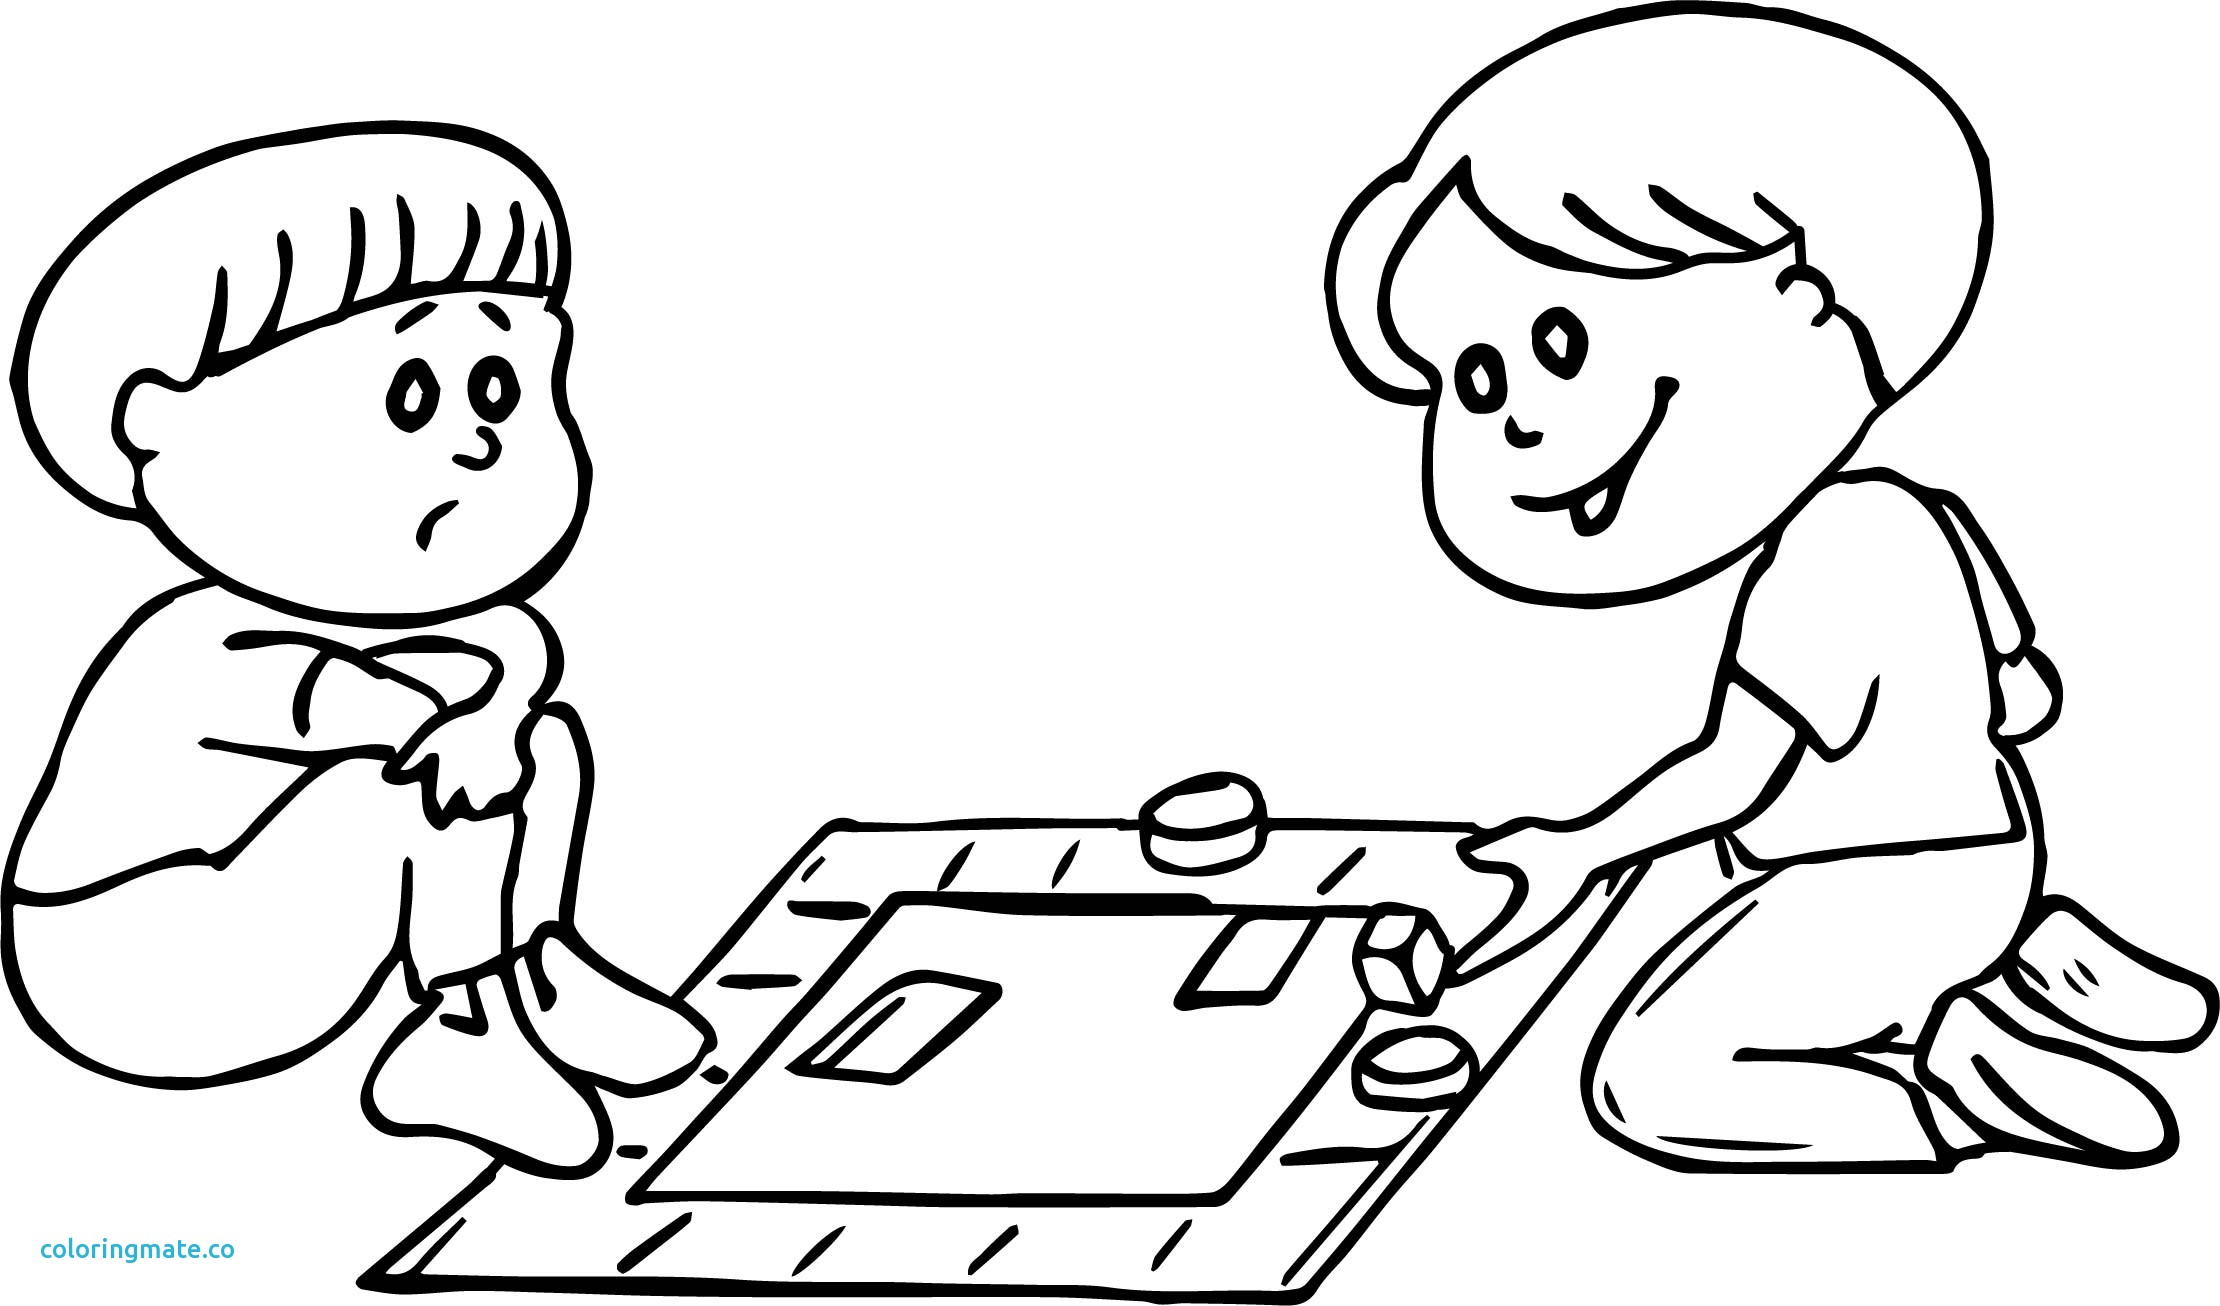 Board Games Drawing At Getdrawings Com Free For Personal Use Board